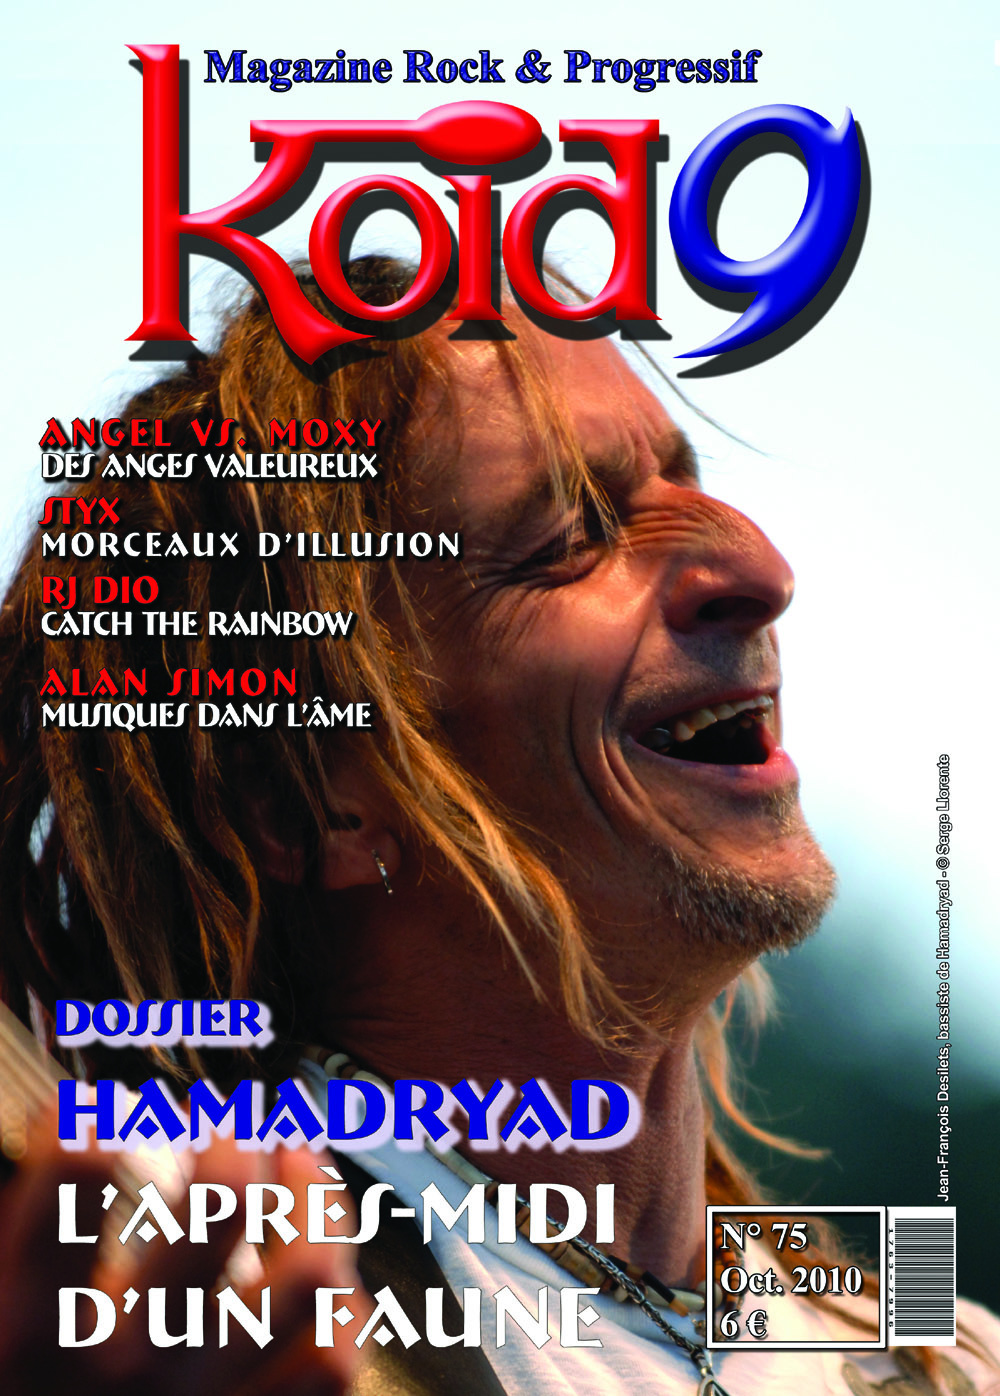 Couverture Koid9 #75 - France